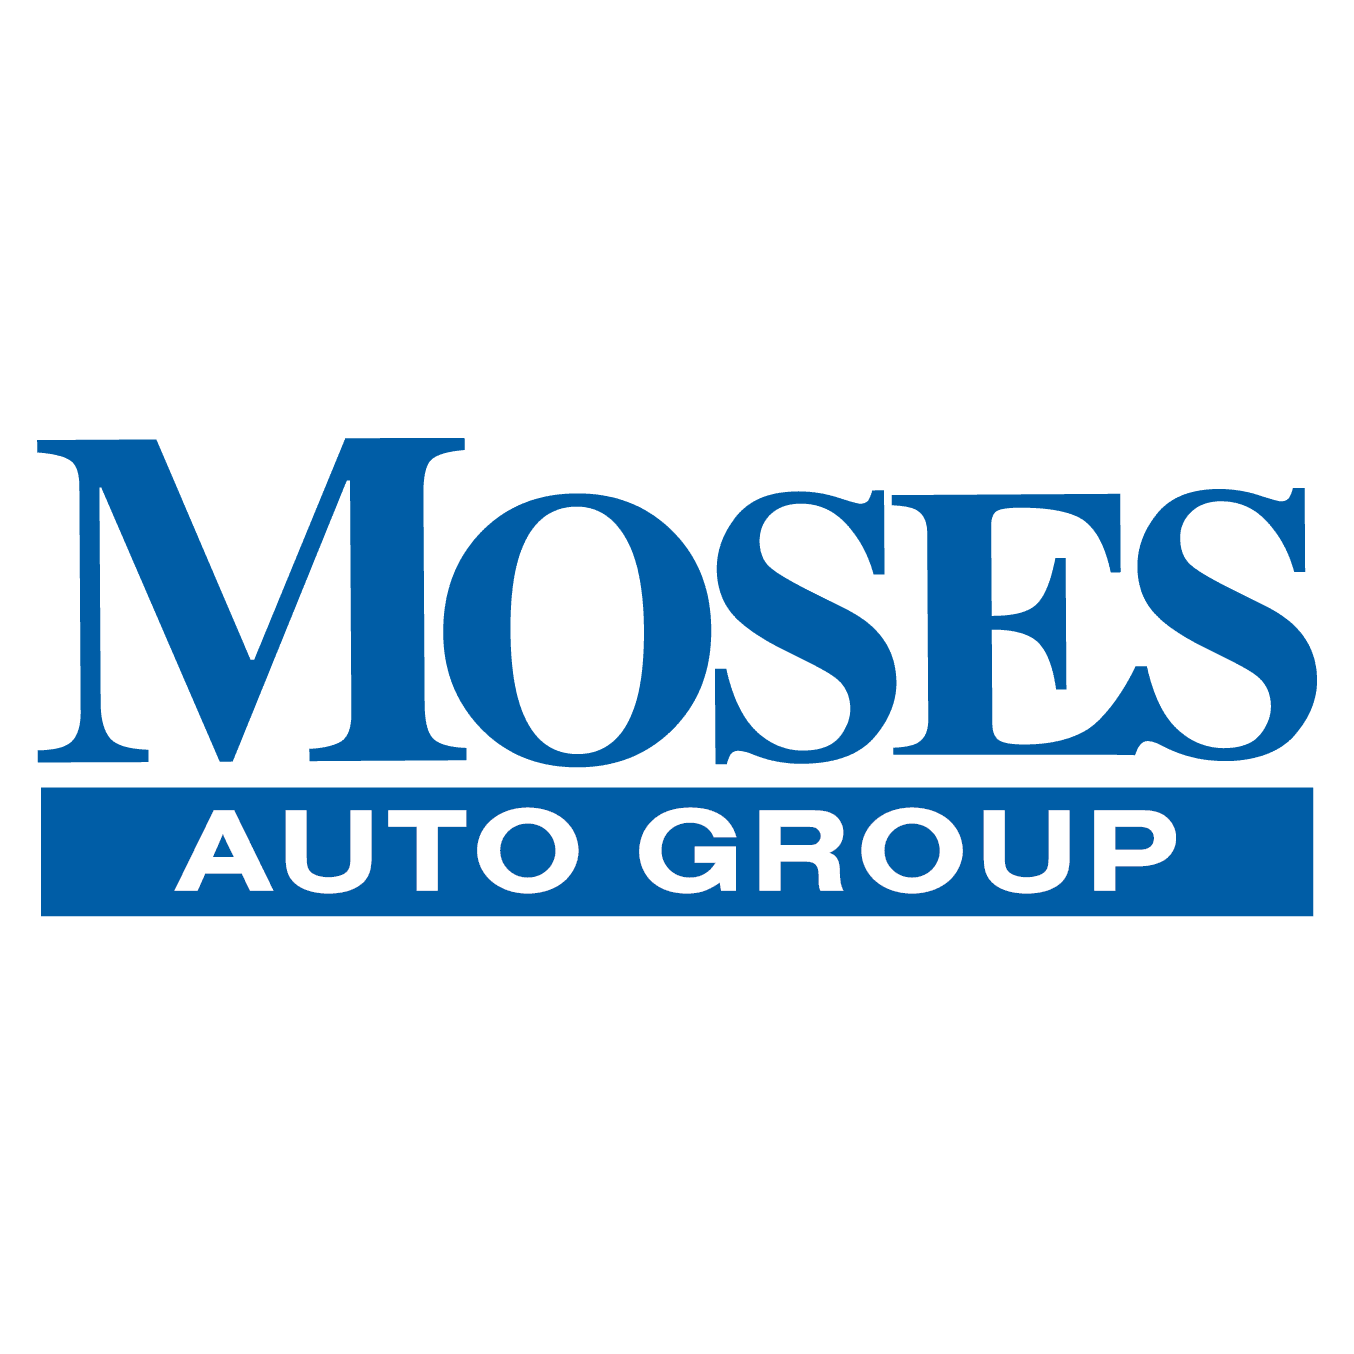 Moses Auto Group